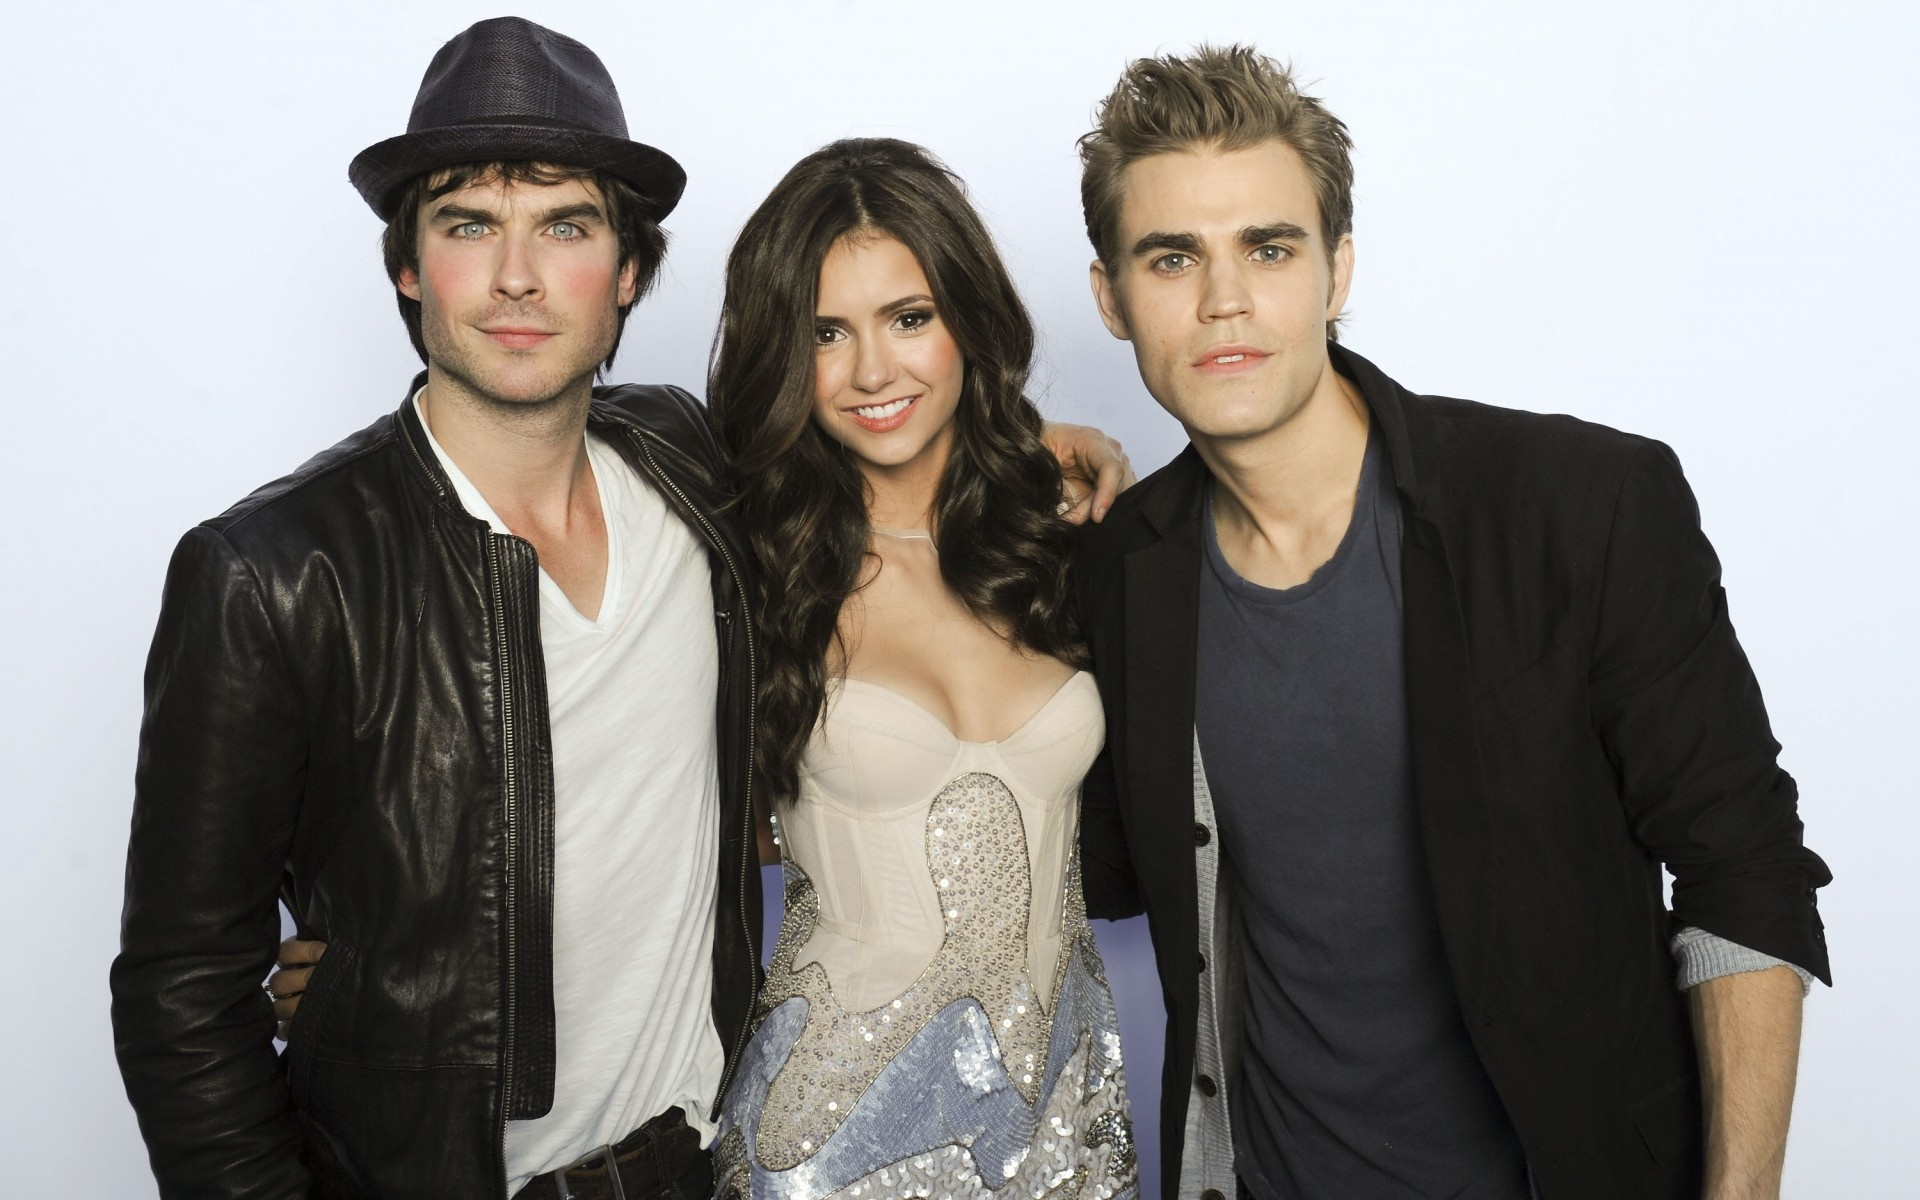 Ian Somerhalder Nina Dobrev Paul Wesley - Wallpaper, High ...